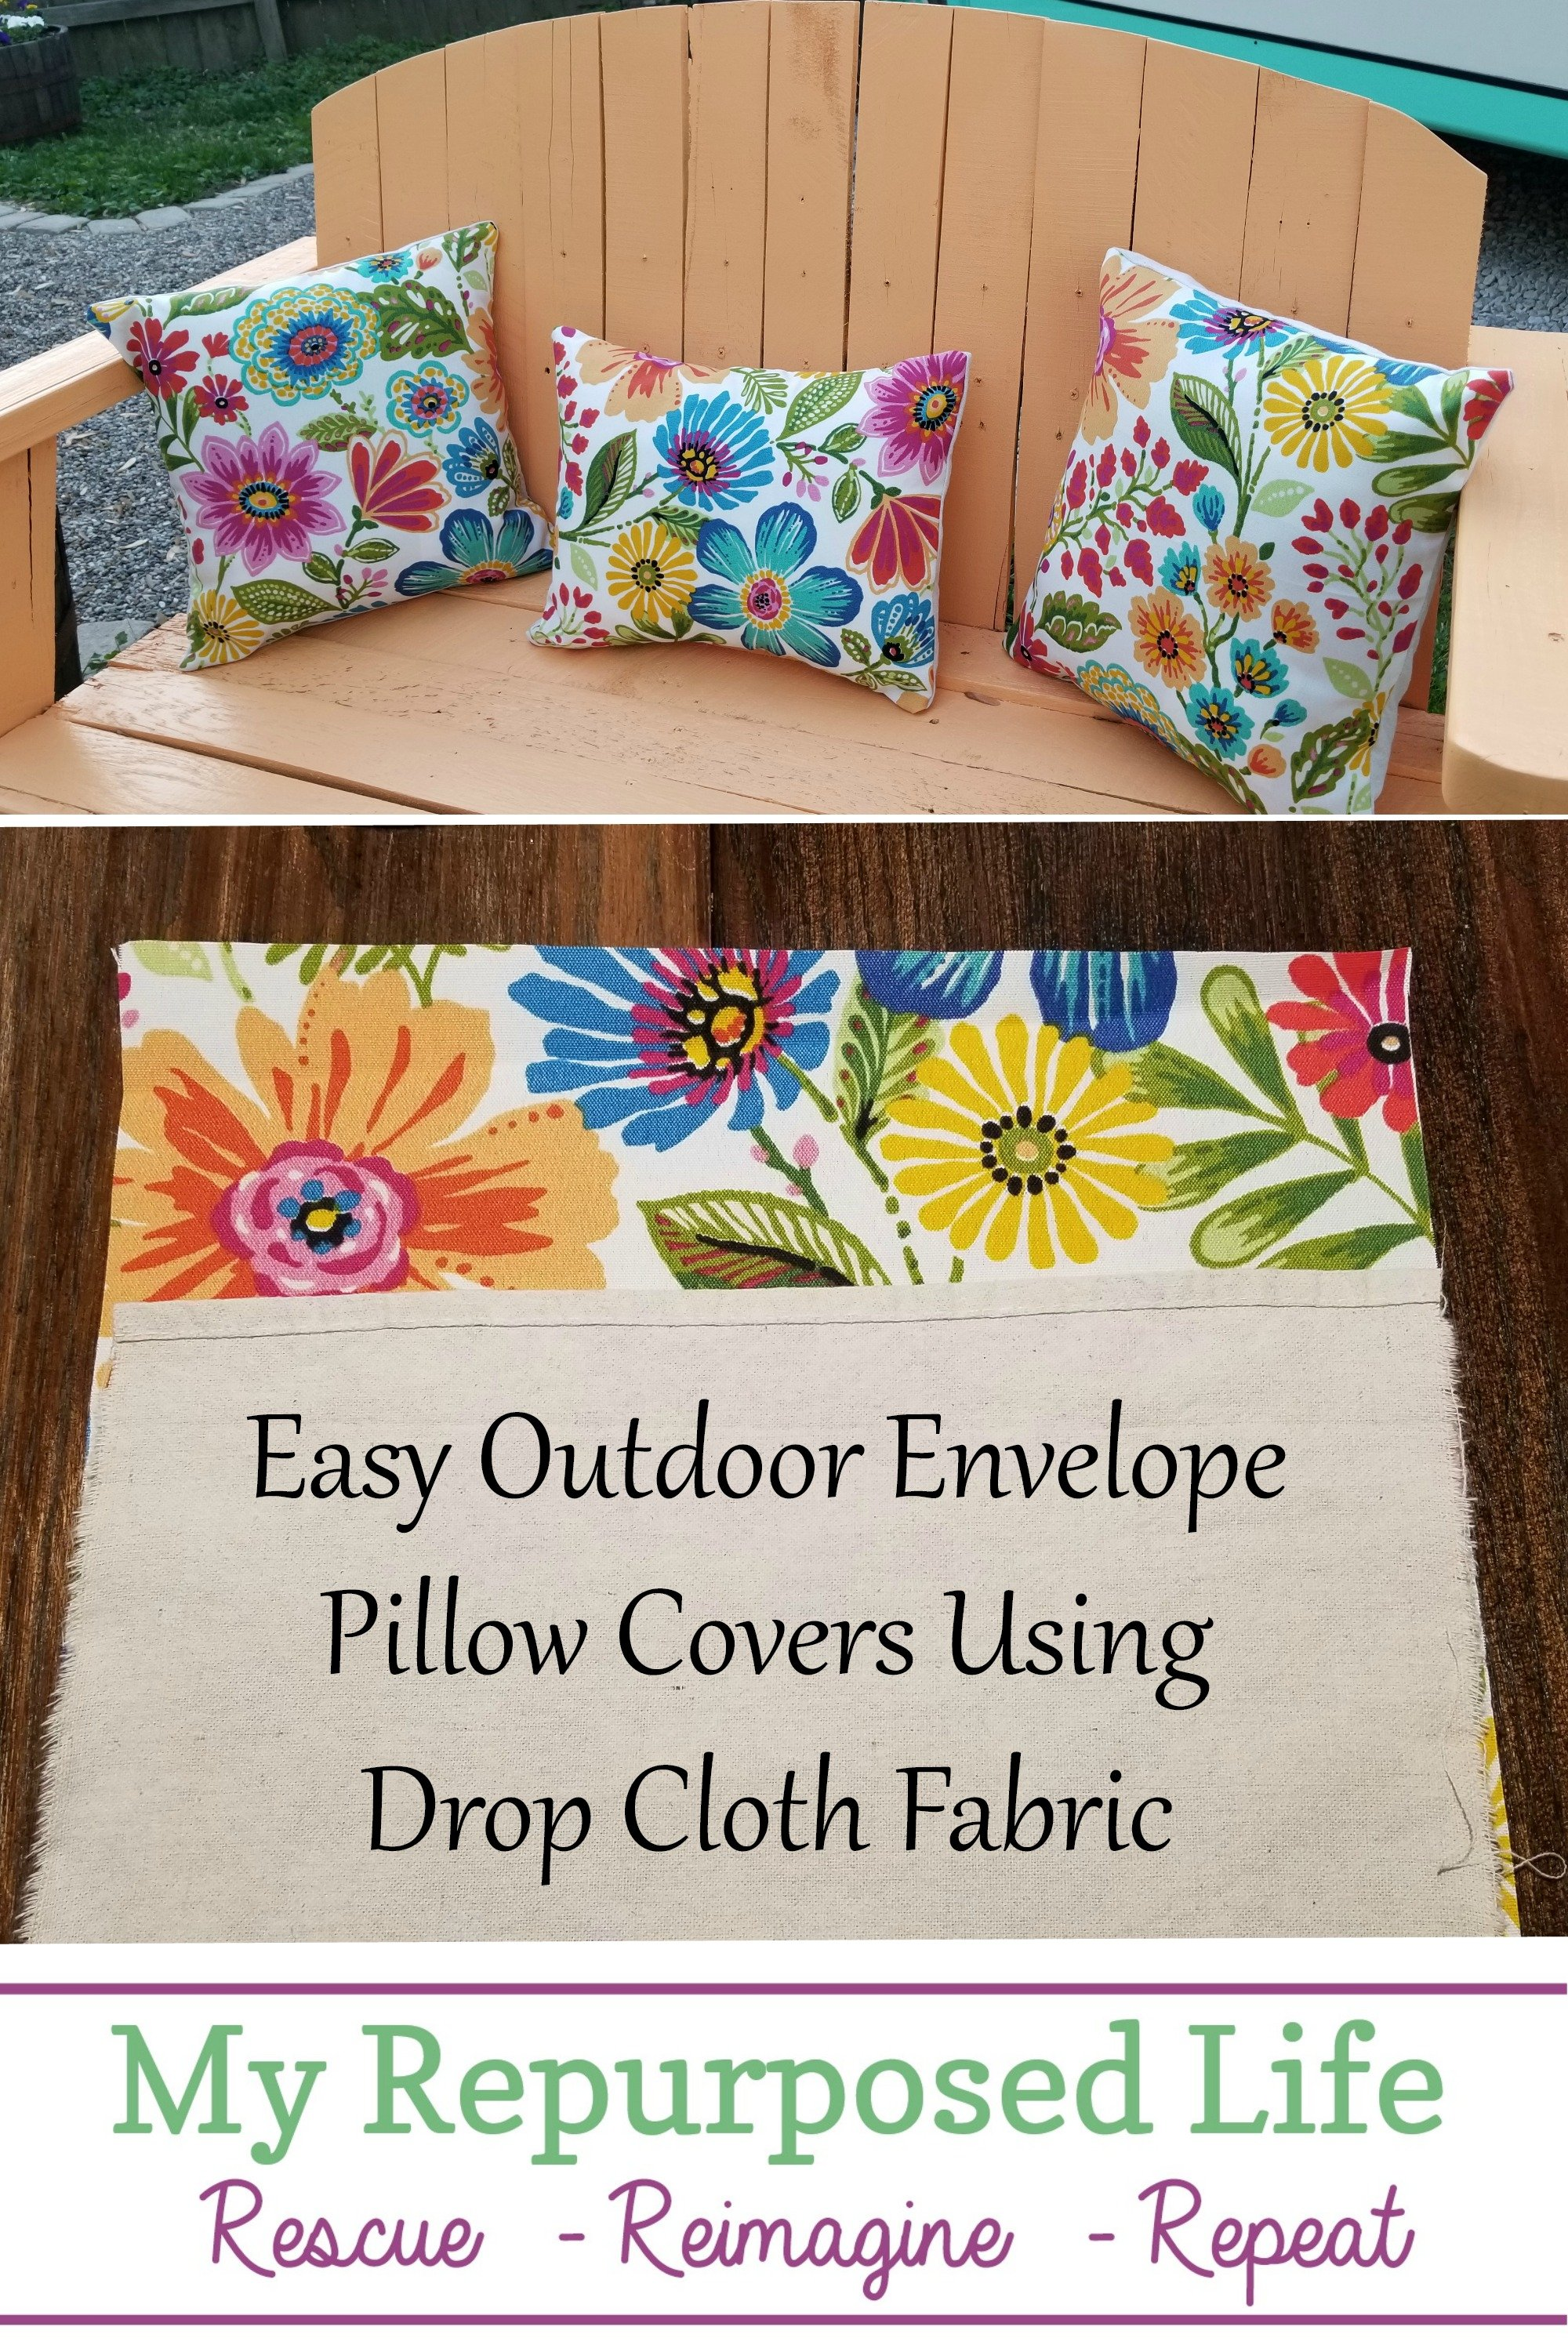 How to make easy outdoor pillow covers using drop cloth fabric. Bonus! How to cover your existing outdoor cushions with new fabric. #myrepurposedlife #easy #sewing #outdoor #pillows #cushions via @repurposedlife